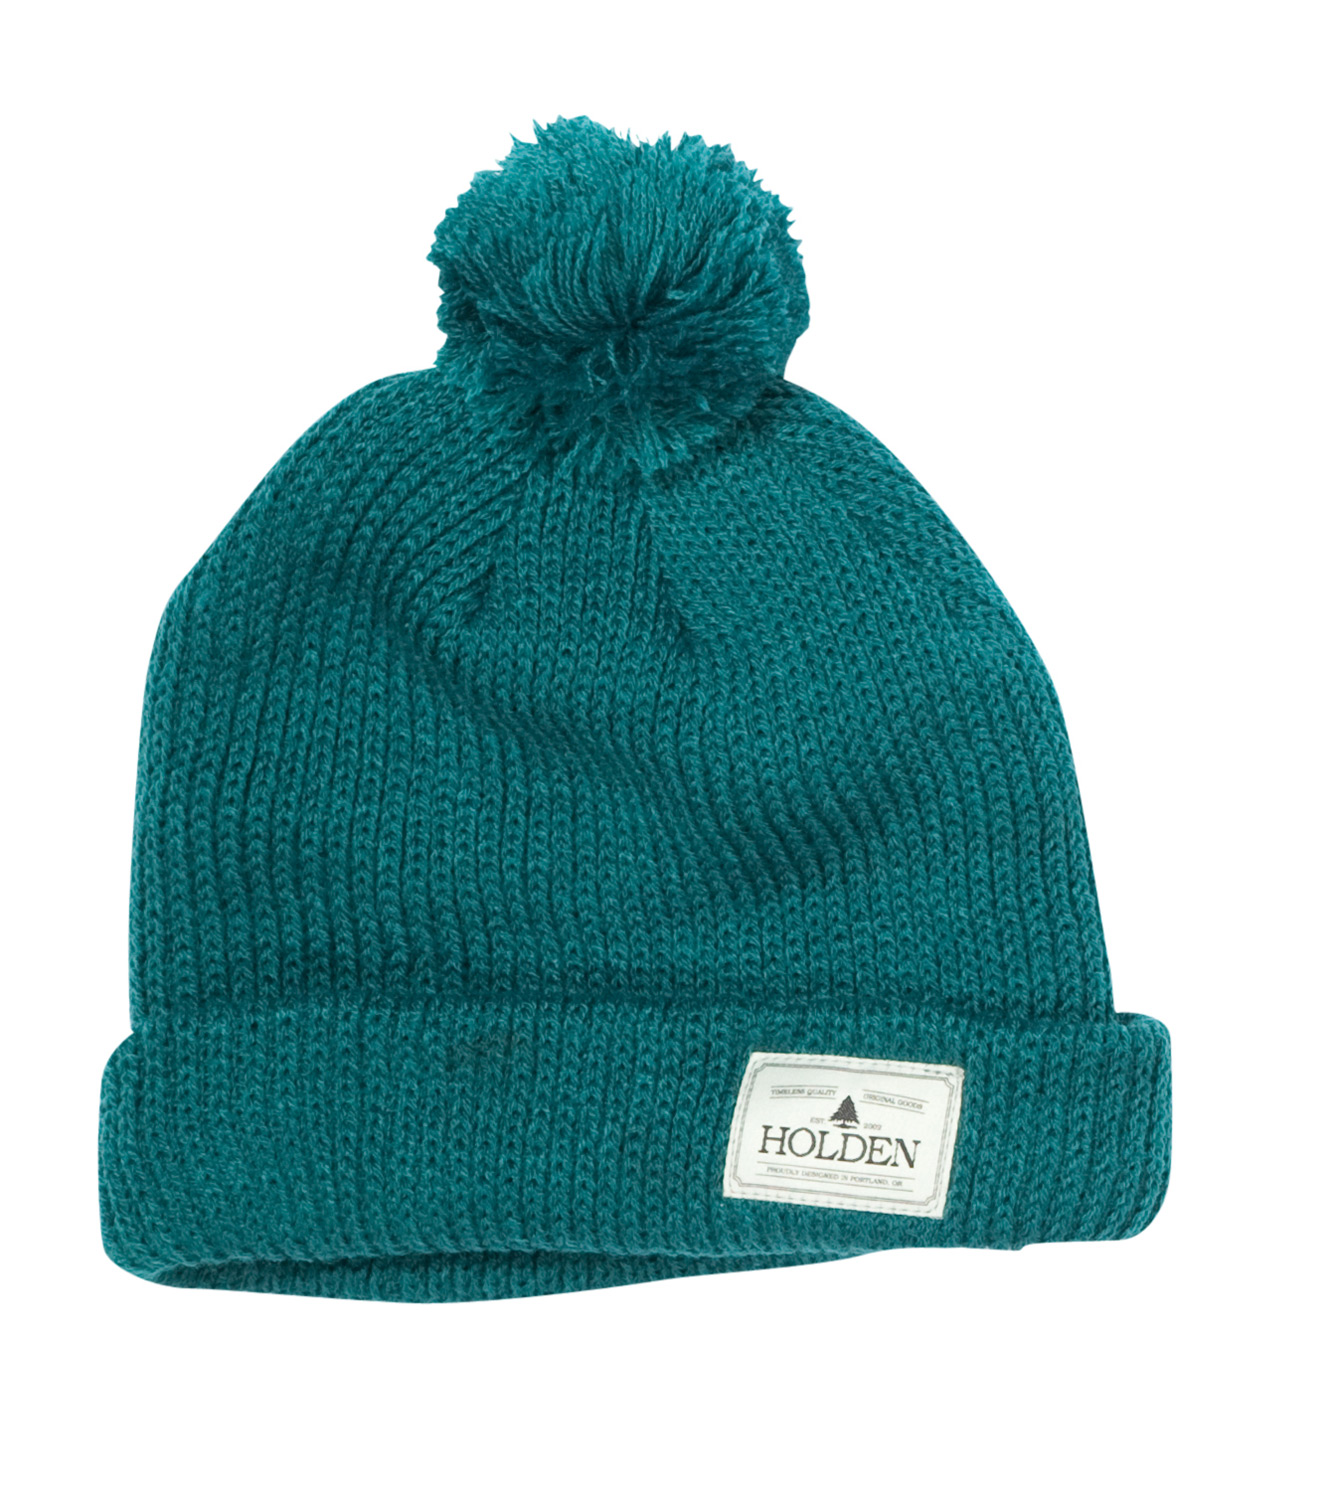 Key Features of the Holden Cuffed Pom Pom Beanie: Double layer classic fit cuffed hat Holden patch at cuff with removable pom pom 100% Acrylic - $11.95